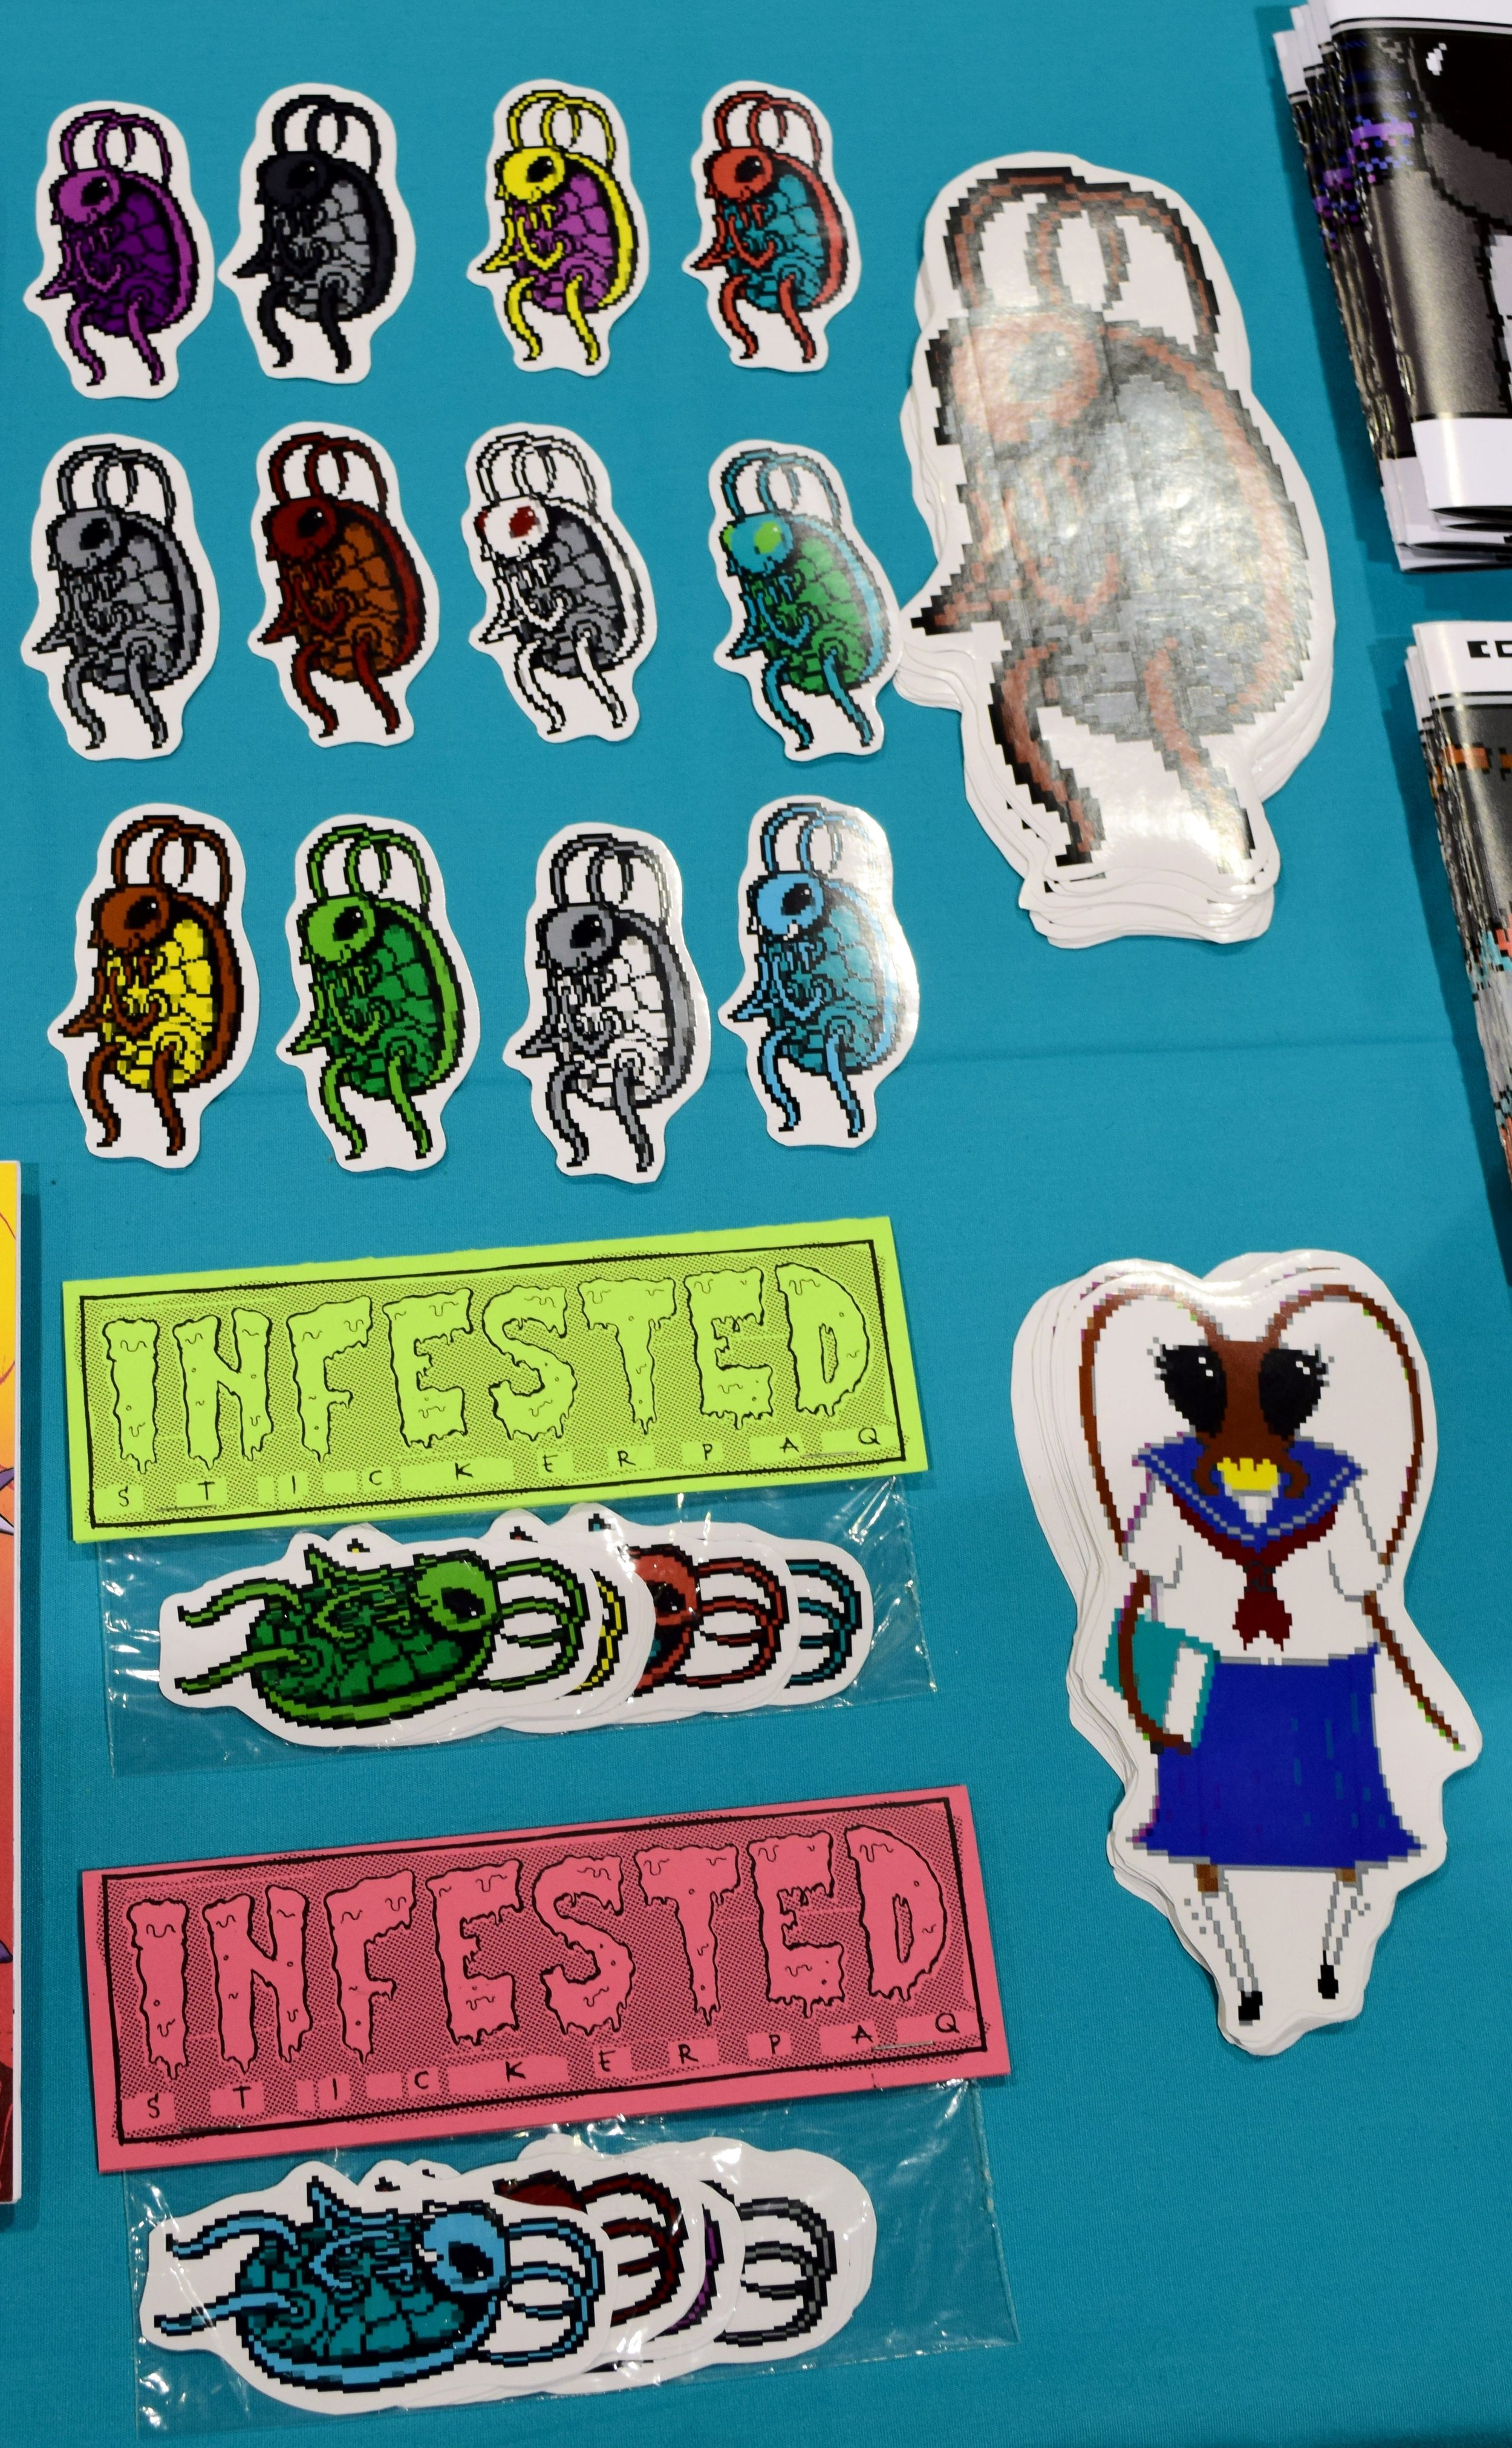 Cockroach stickers from Reset Survivor at Phoenix Comic Con 2017.